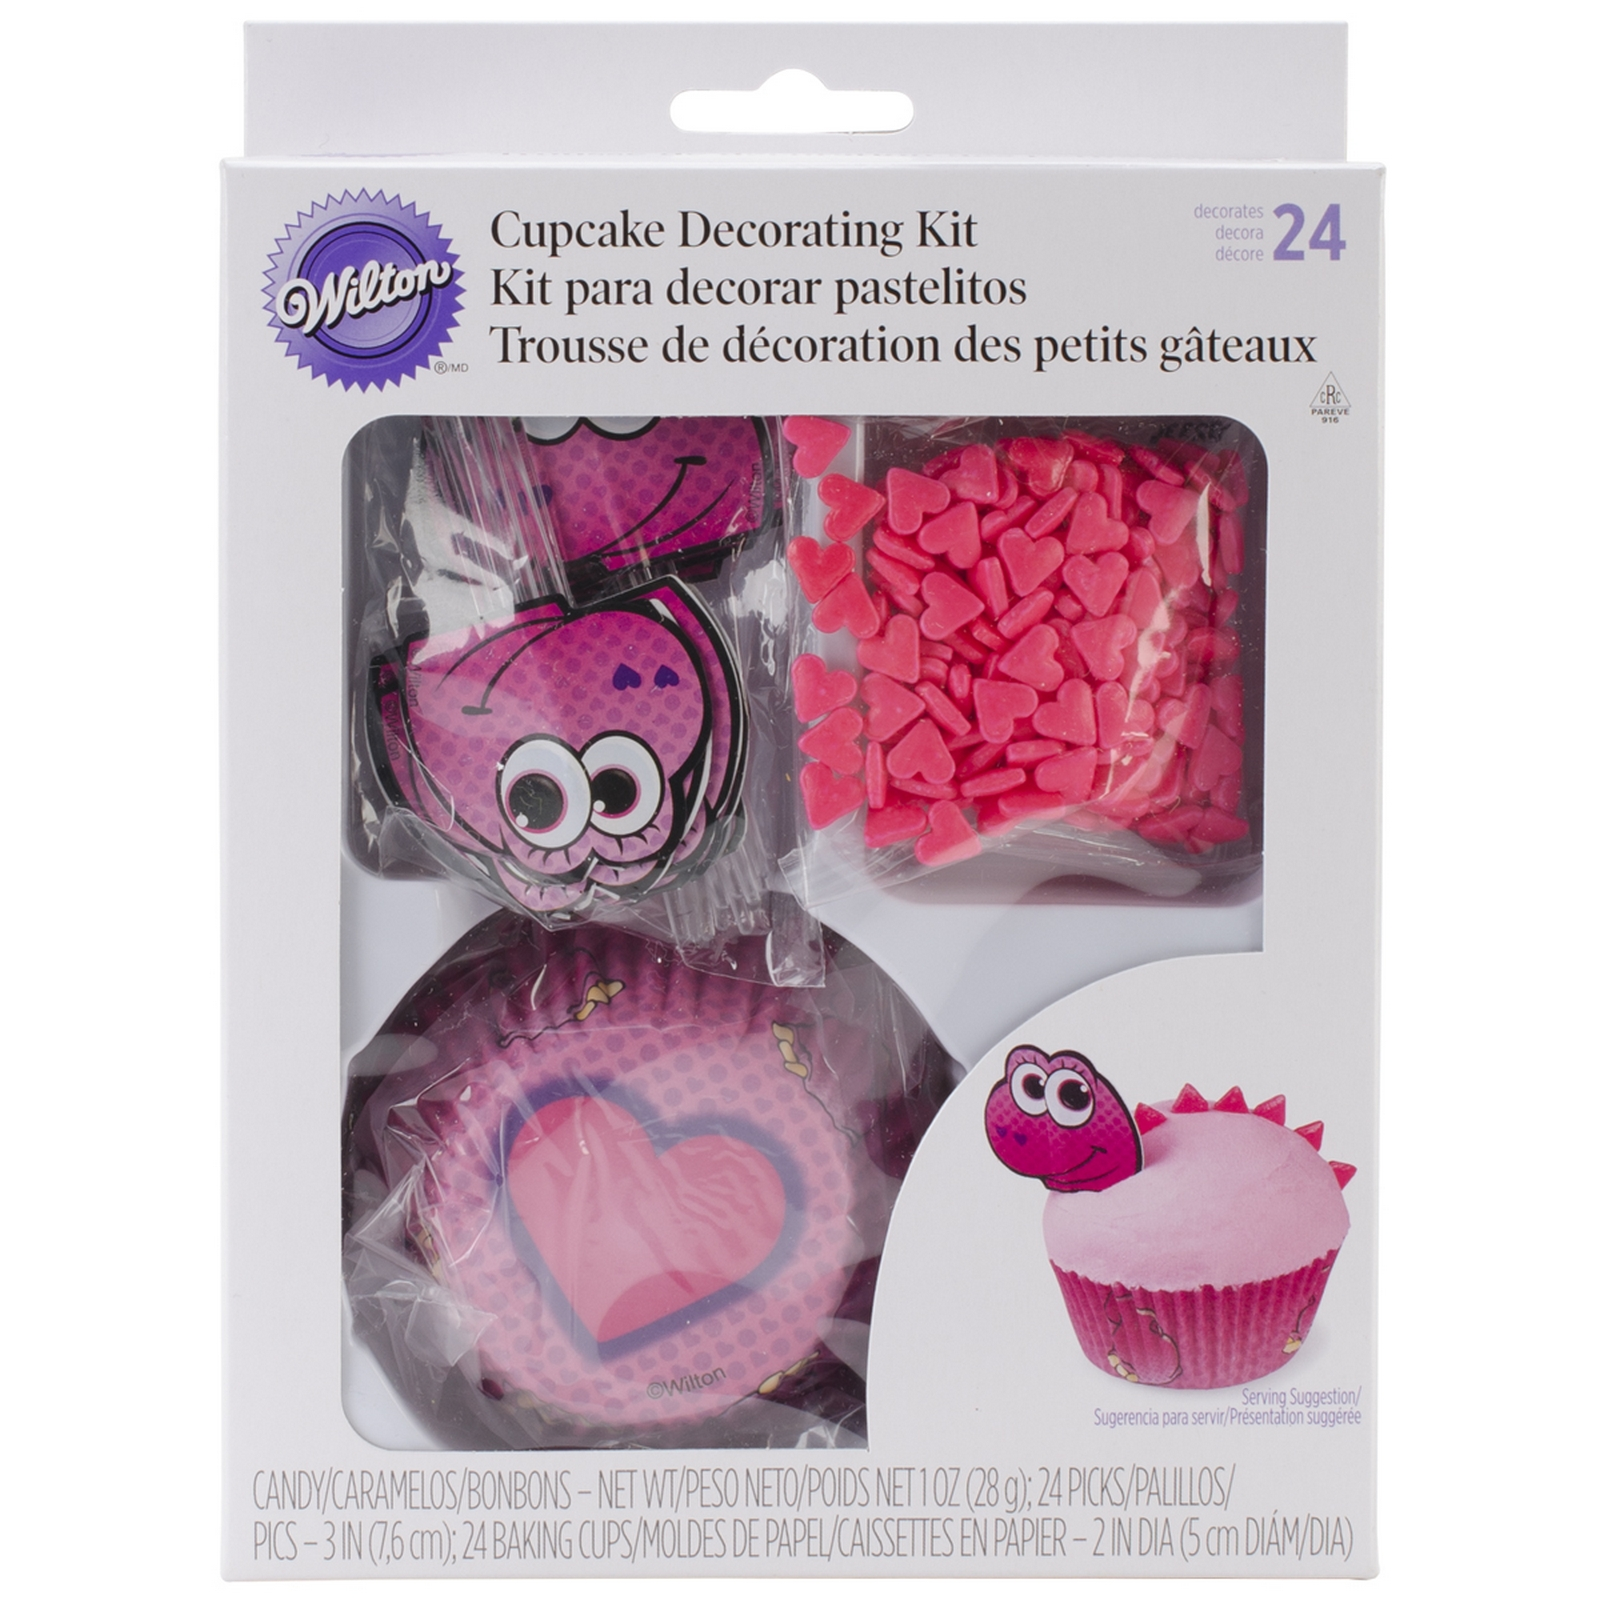 2000541 Wilton Cupcake Decorating Kit Valentine